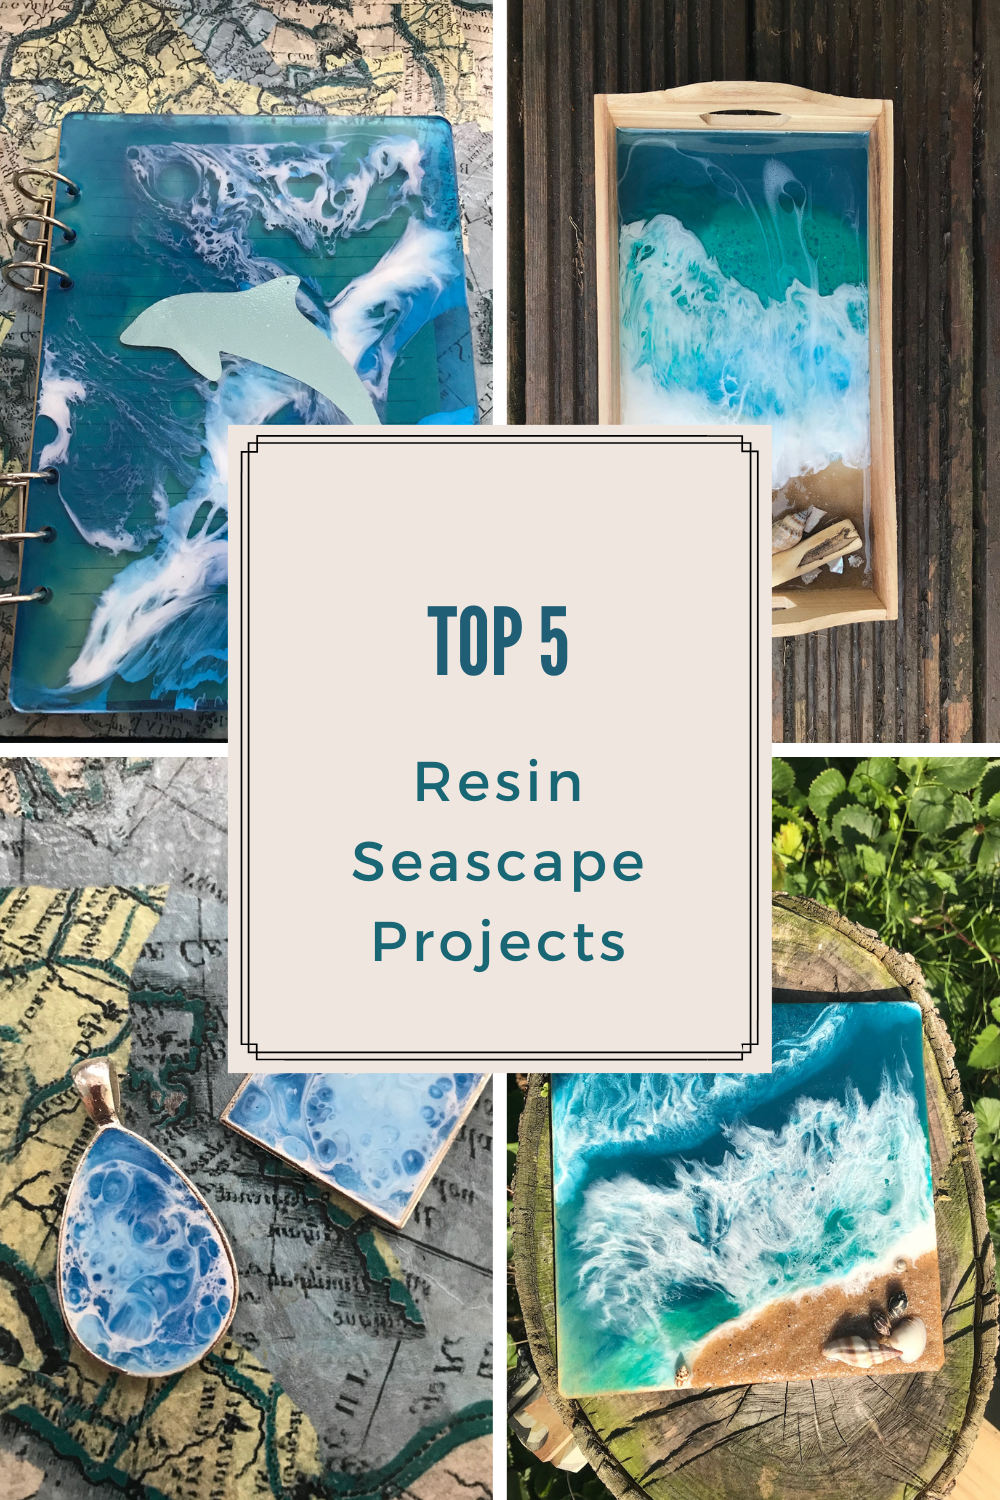 Top 5 Resin Seascape projects